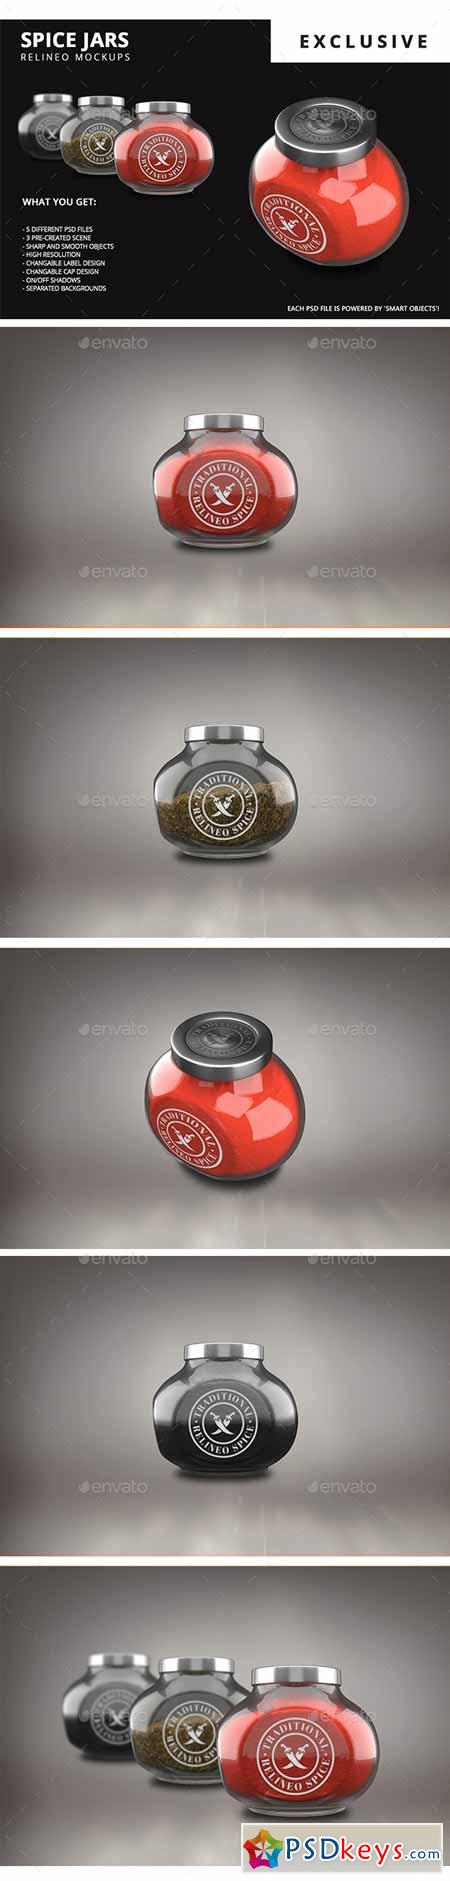 Spice Jar Mock-up Pack 14102167